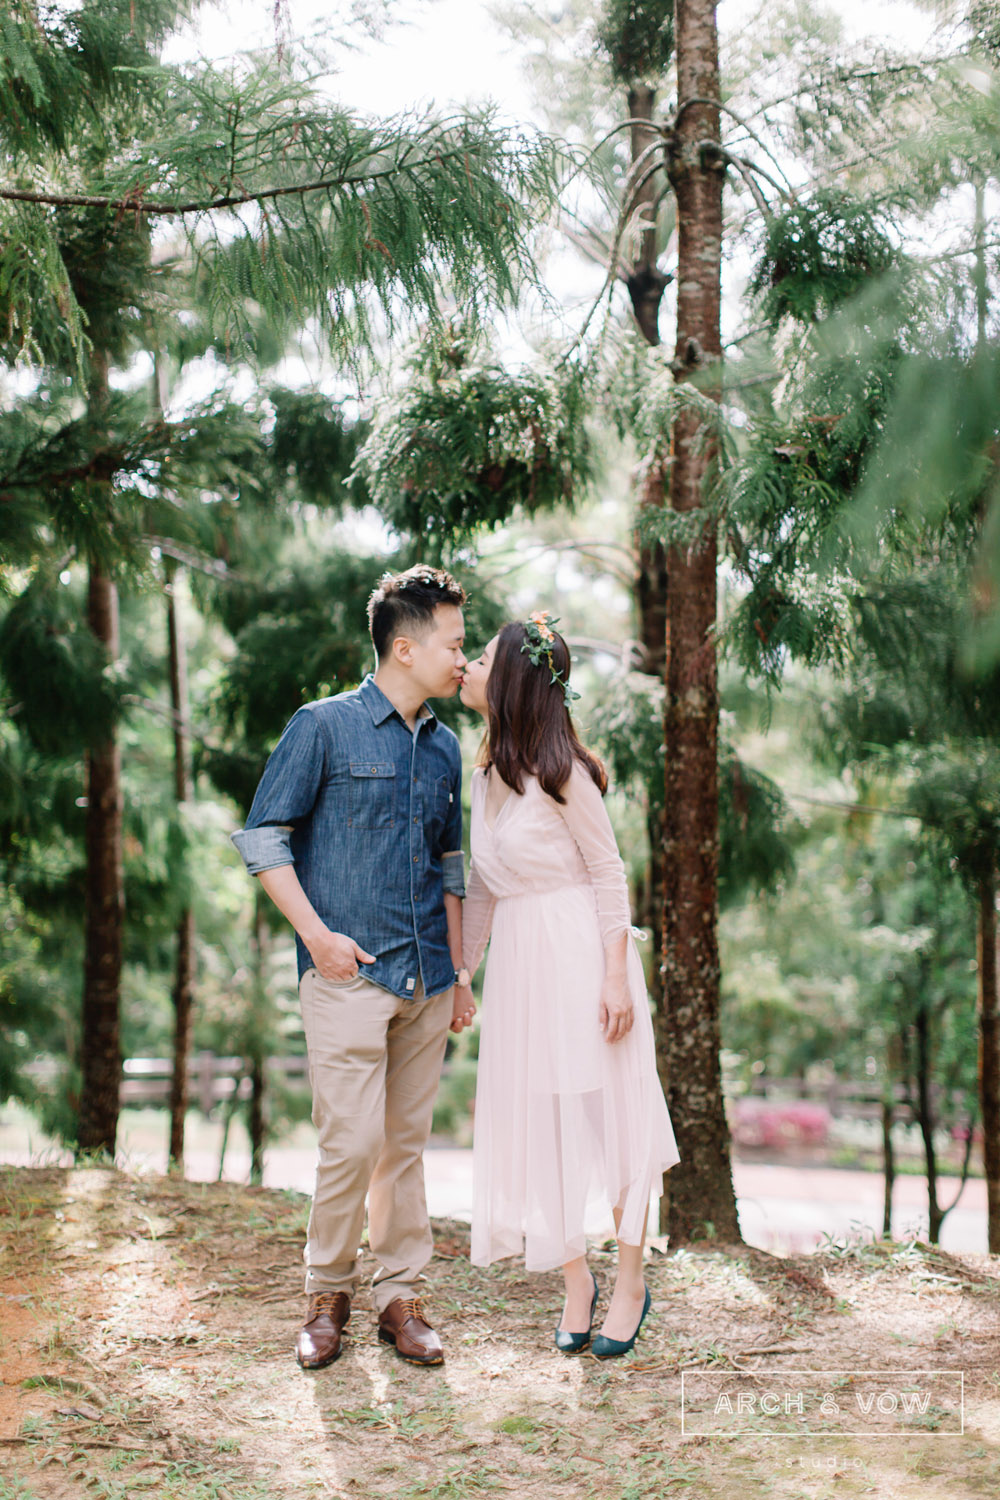 KC & Elly Prewed watermark-050.jpg